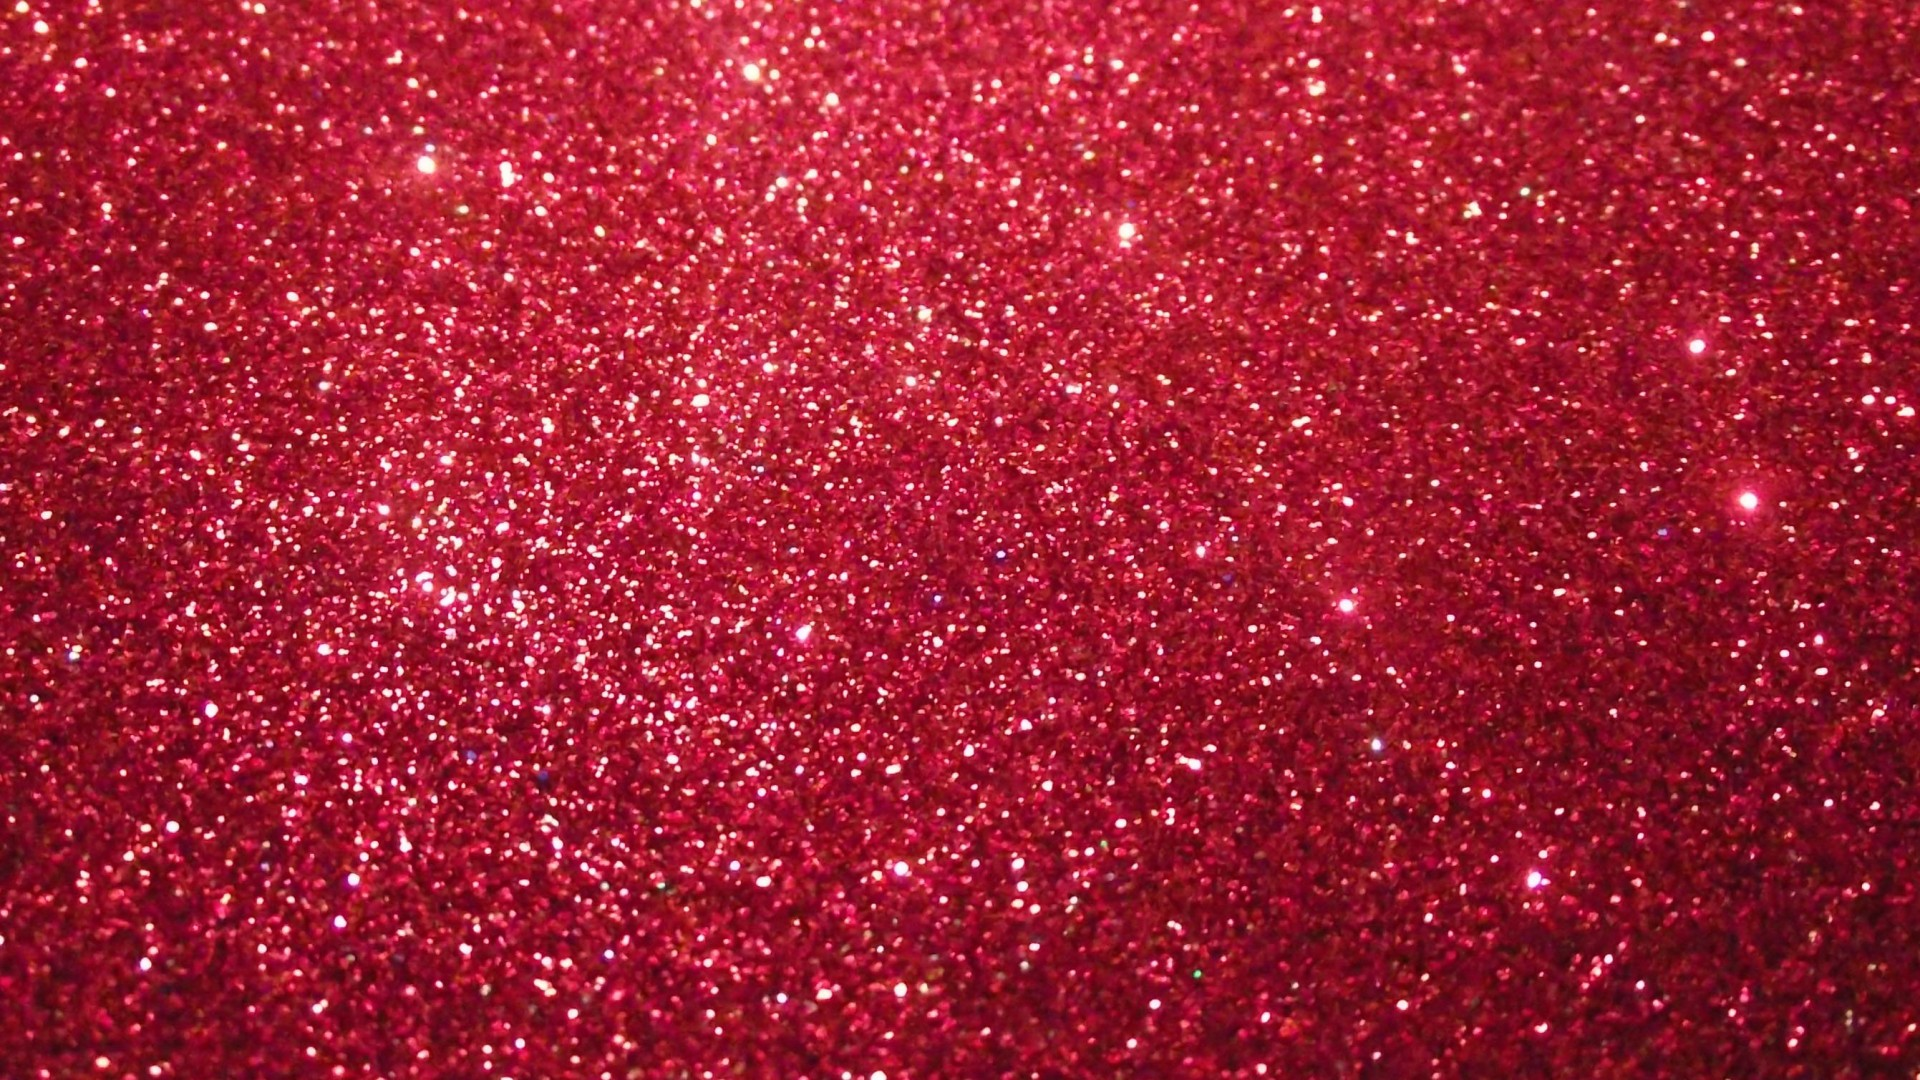 [49+] Pink Glitter Desktop Wallpaper on WallpaperSafari